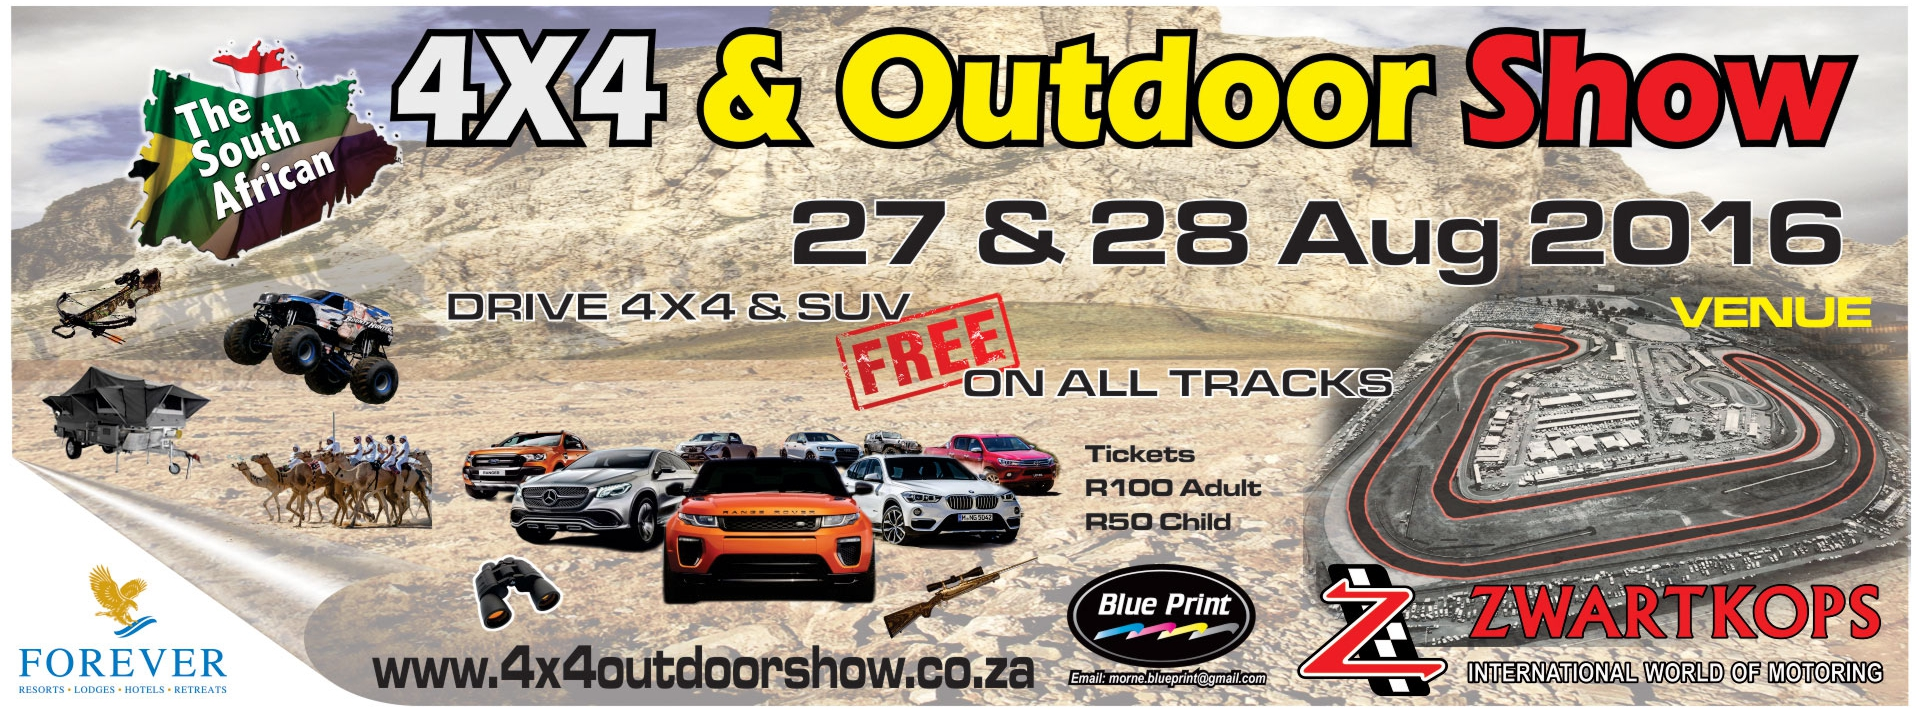 The South African 4×4 Outdoor Show – 2016